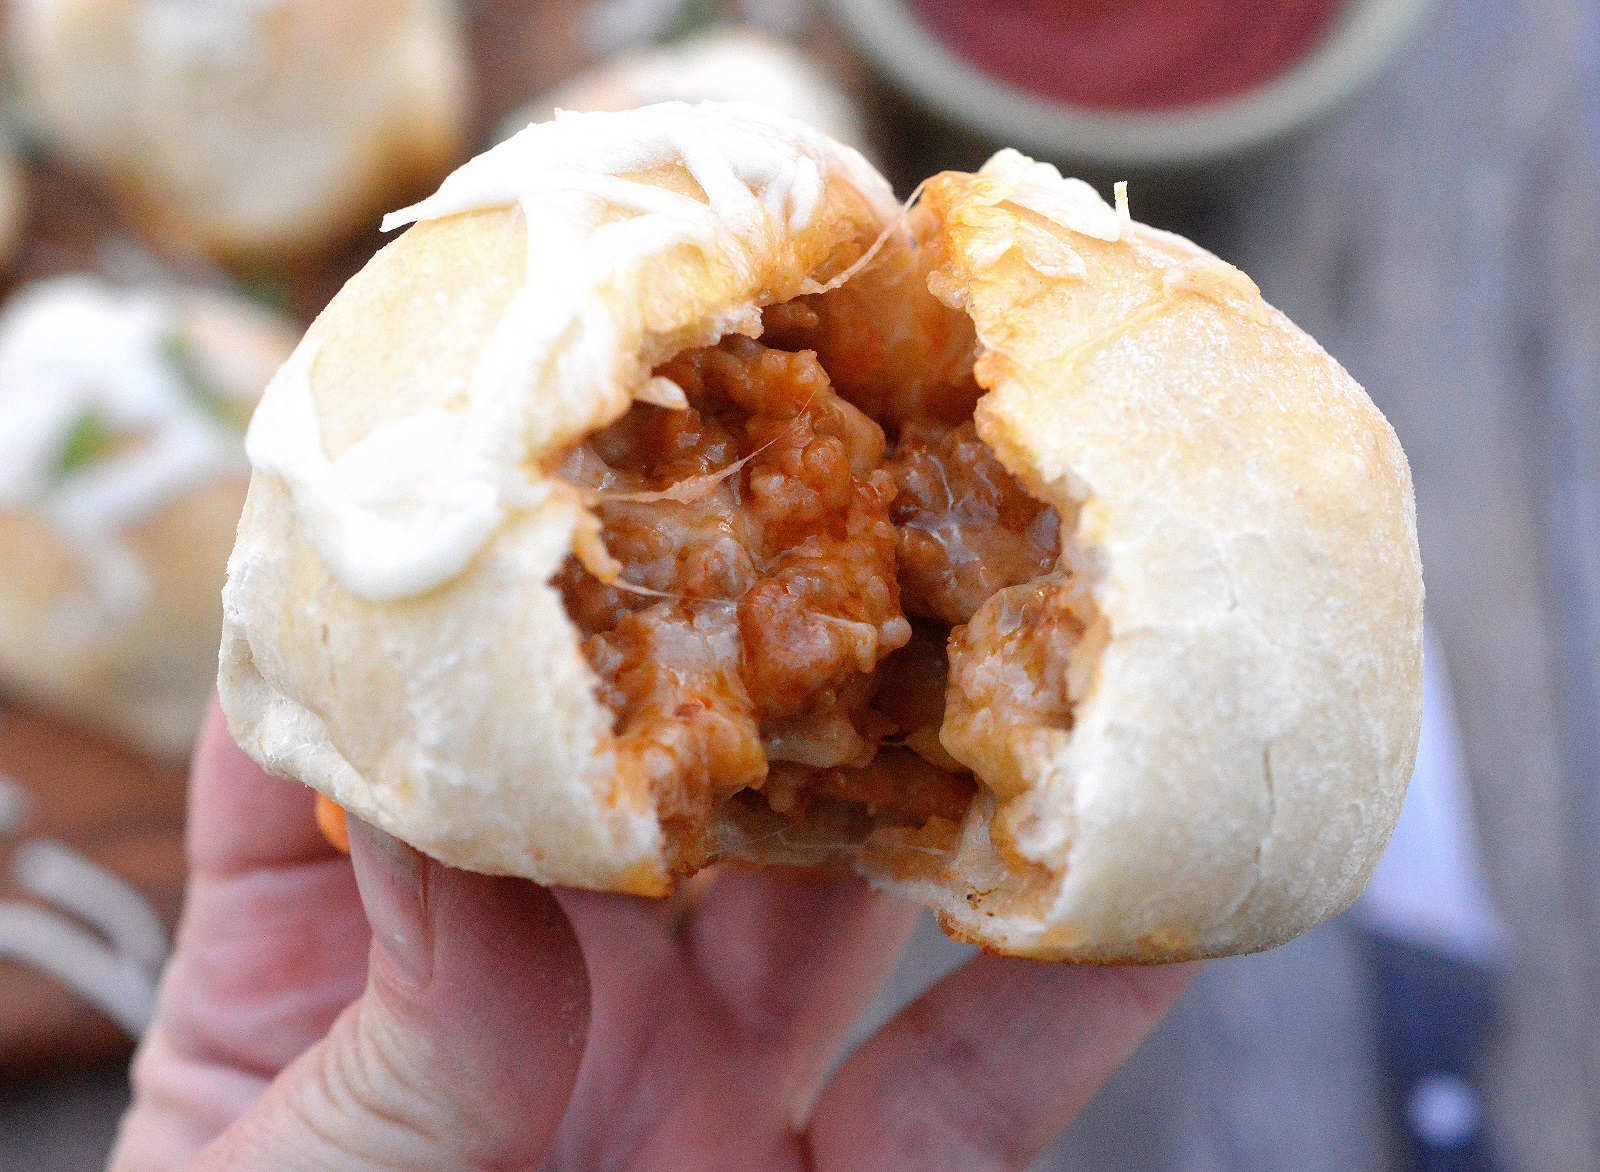 Cheese Sausage Bombs! Pizza dough stuffed with sausage and cheese makes for perfect game day grub!